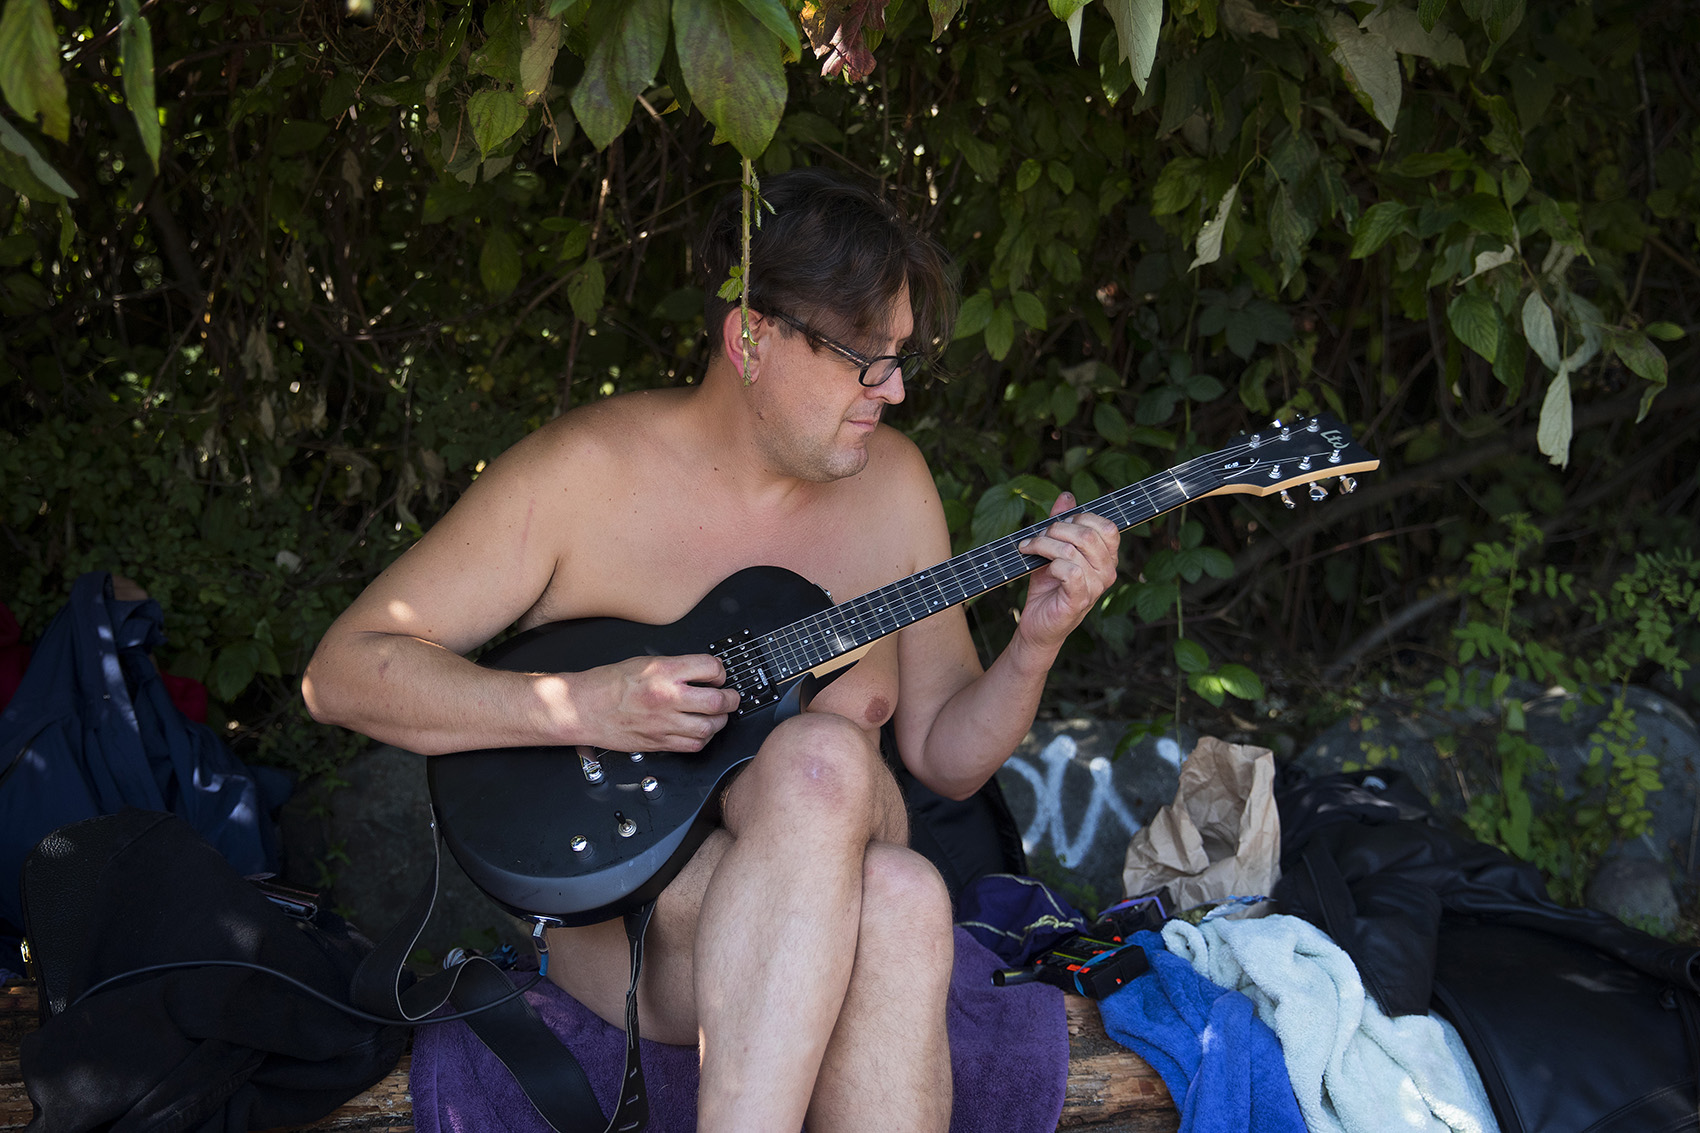 Young nudists playing instruments nude pics